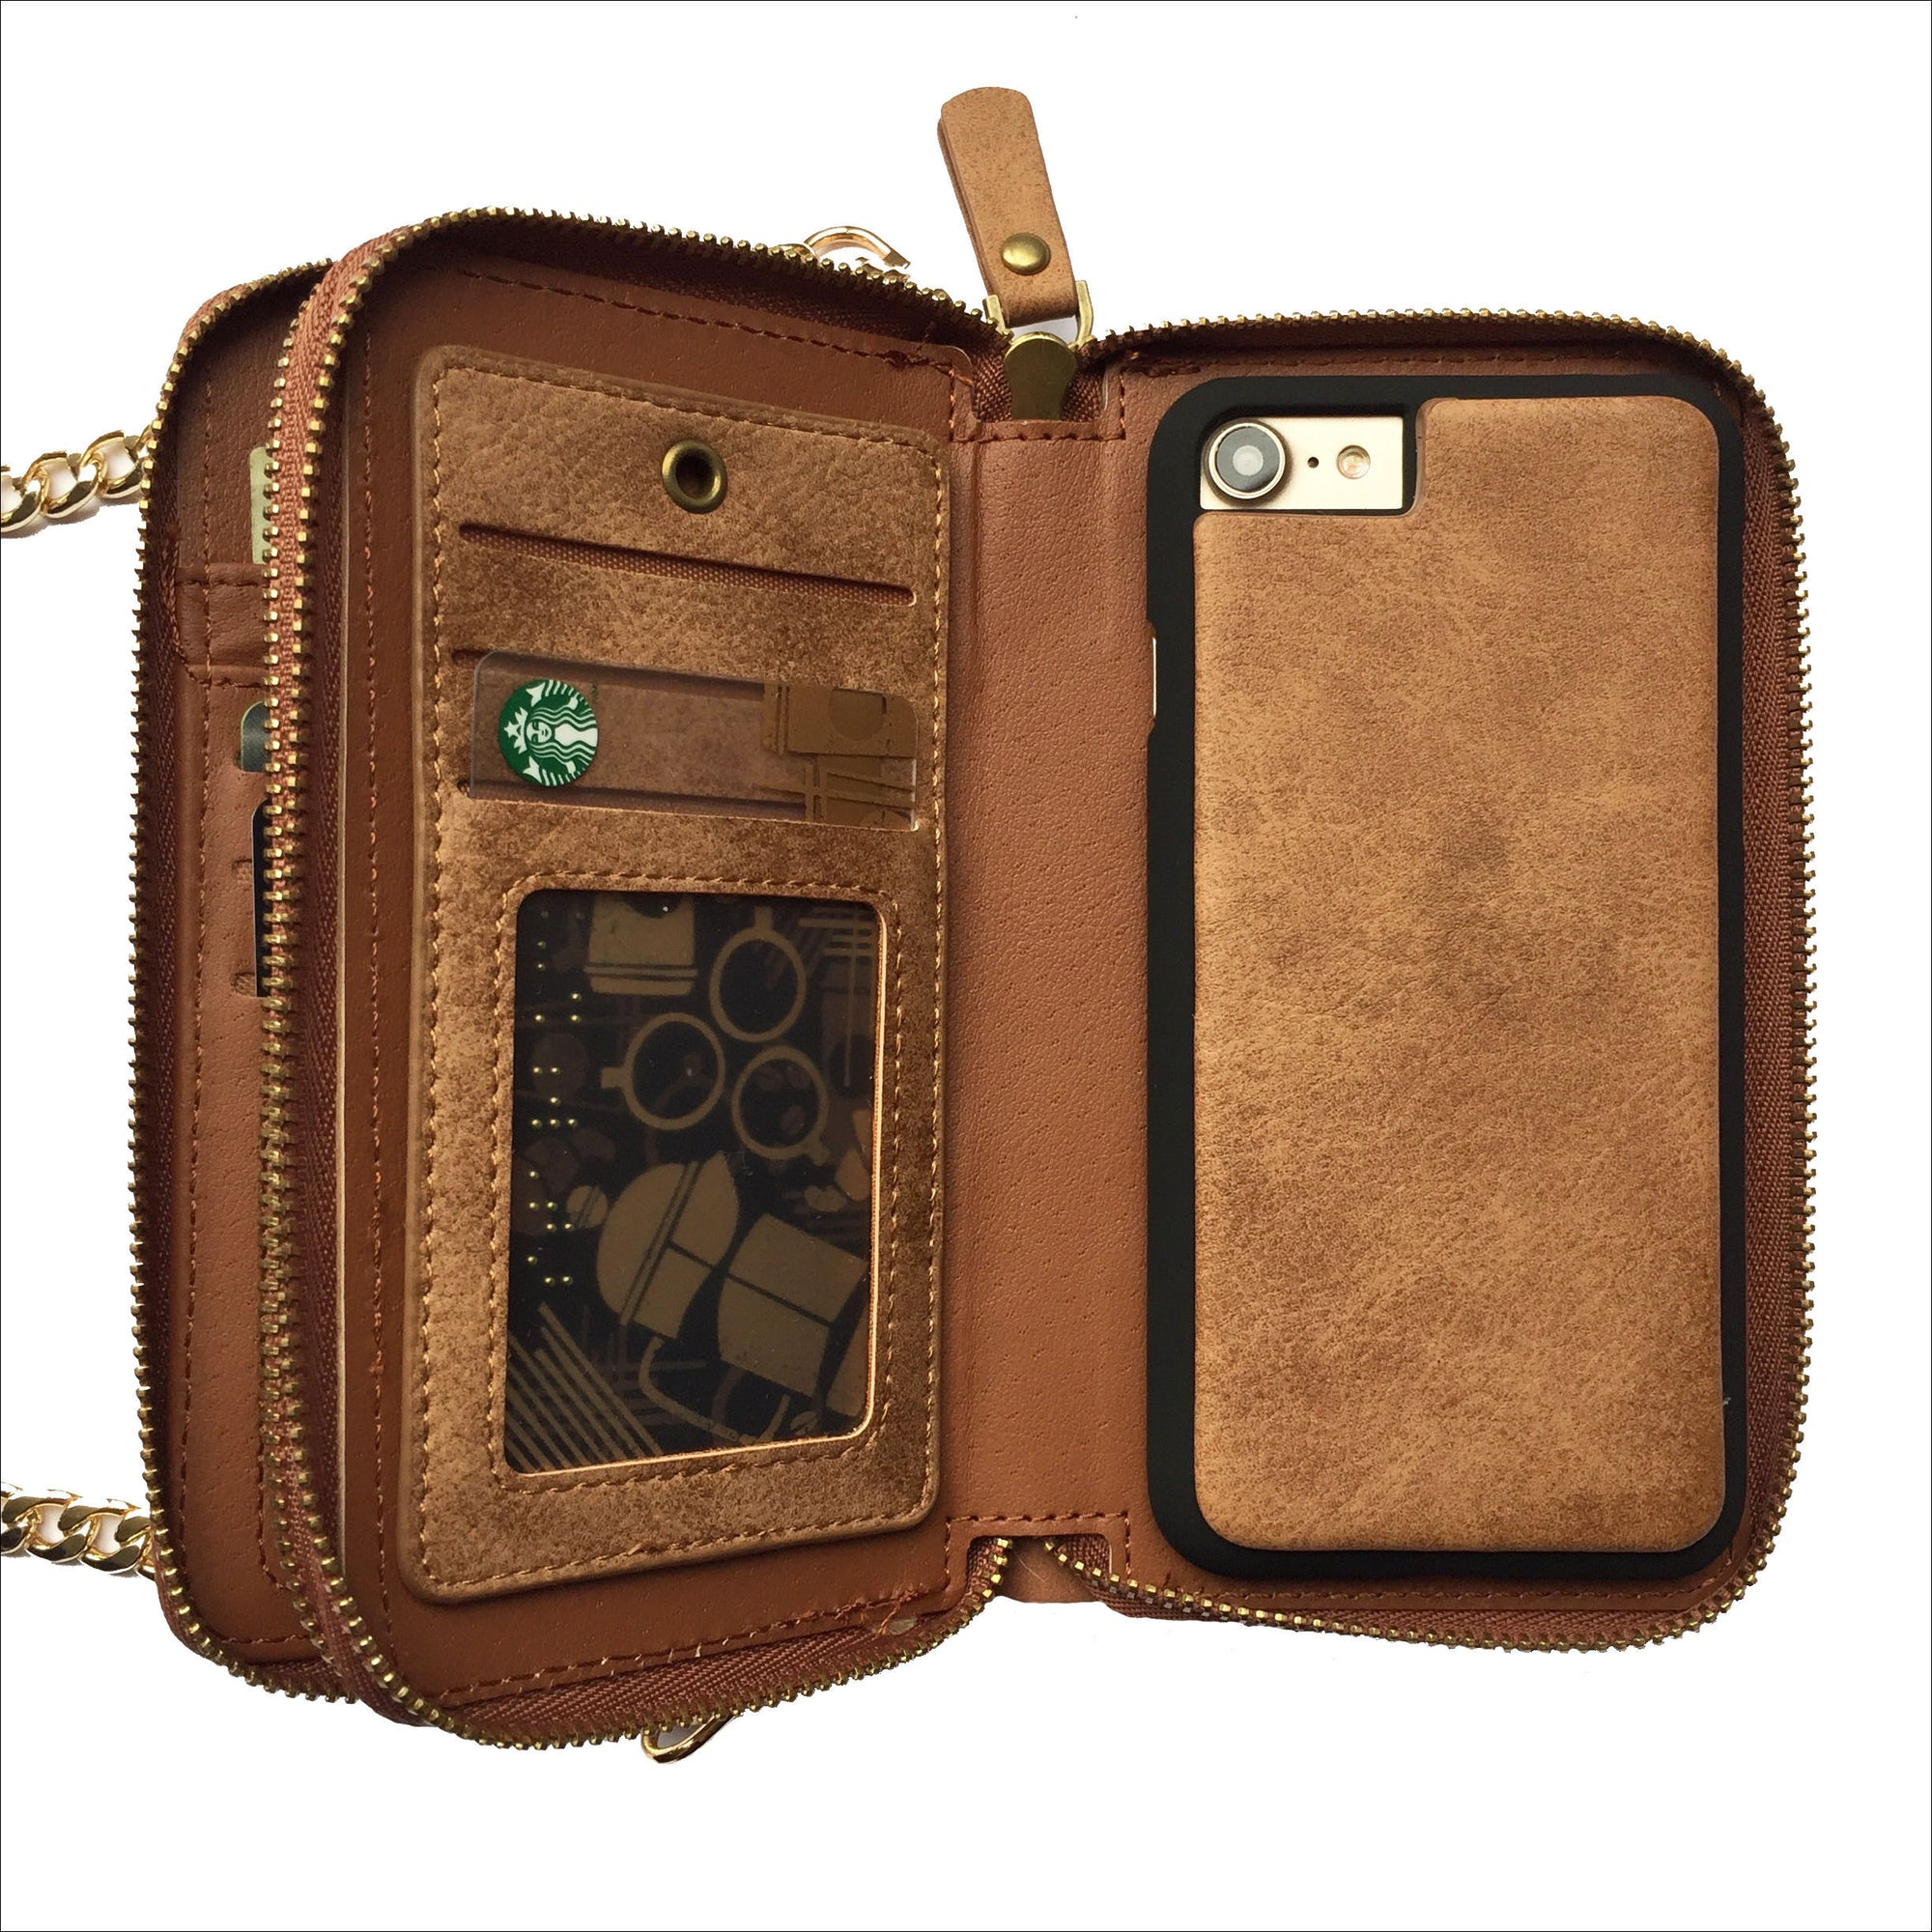 049cb5ae0e37 Crossbody Wallet Case in Tan